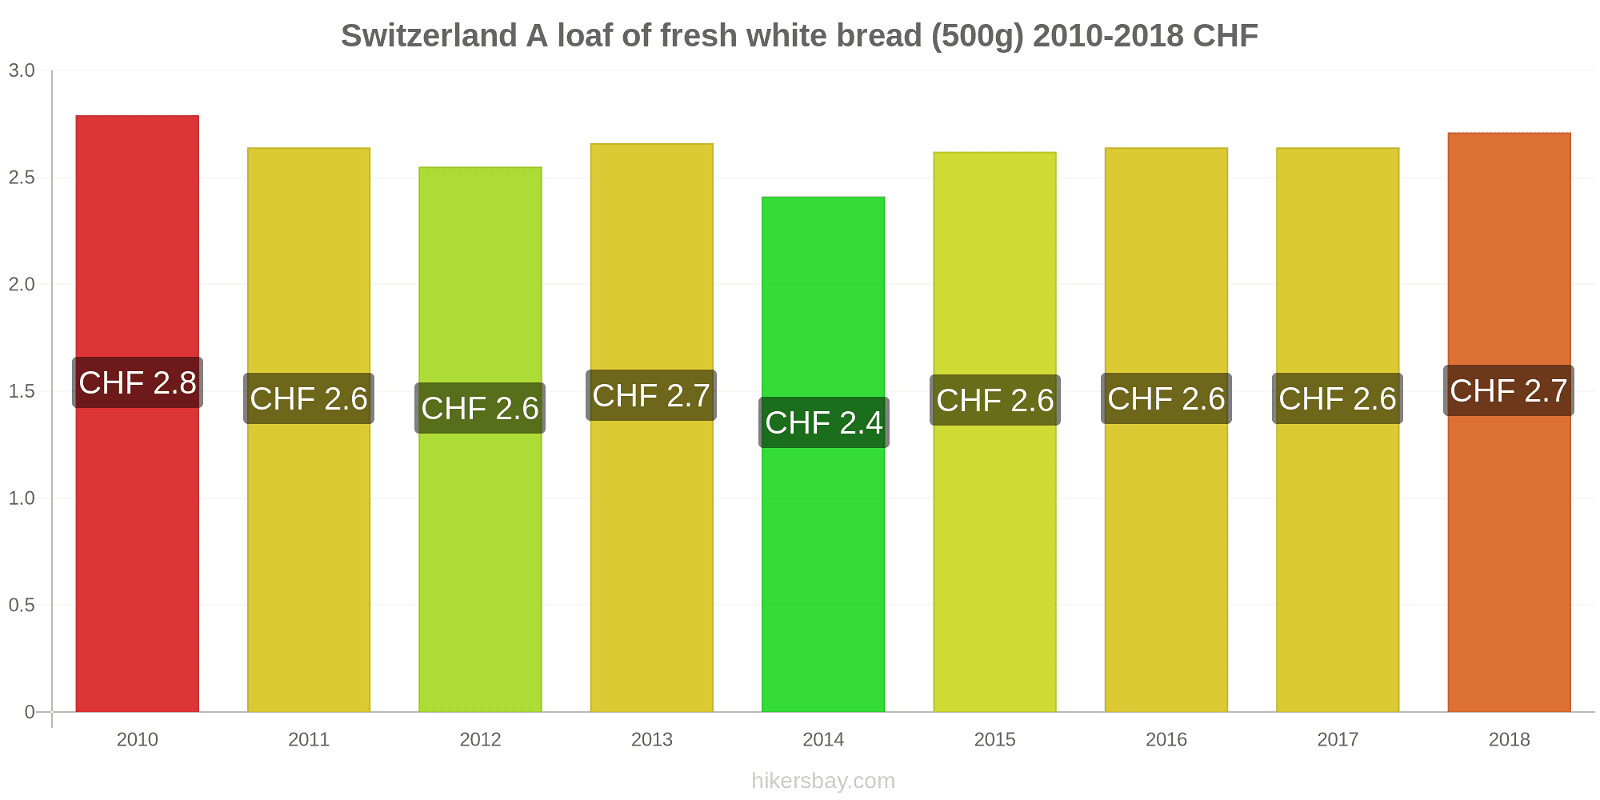 Switzerland price changes A loaf of fresh white bread (500g) hikersbay.com